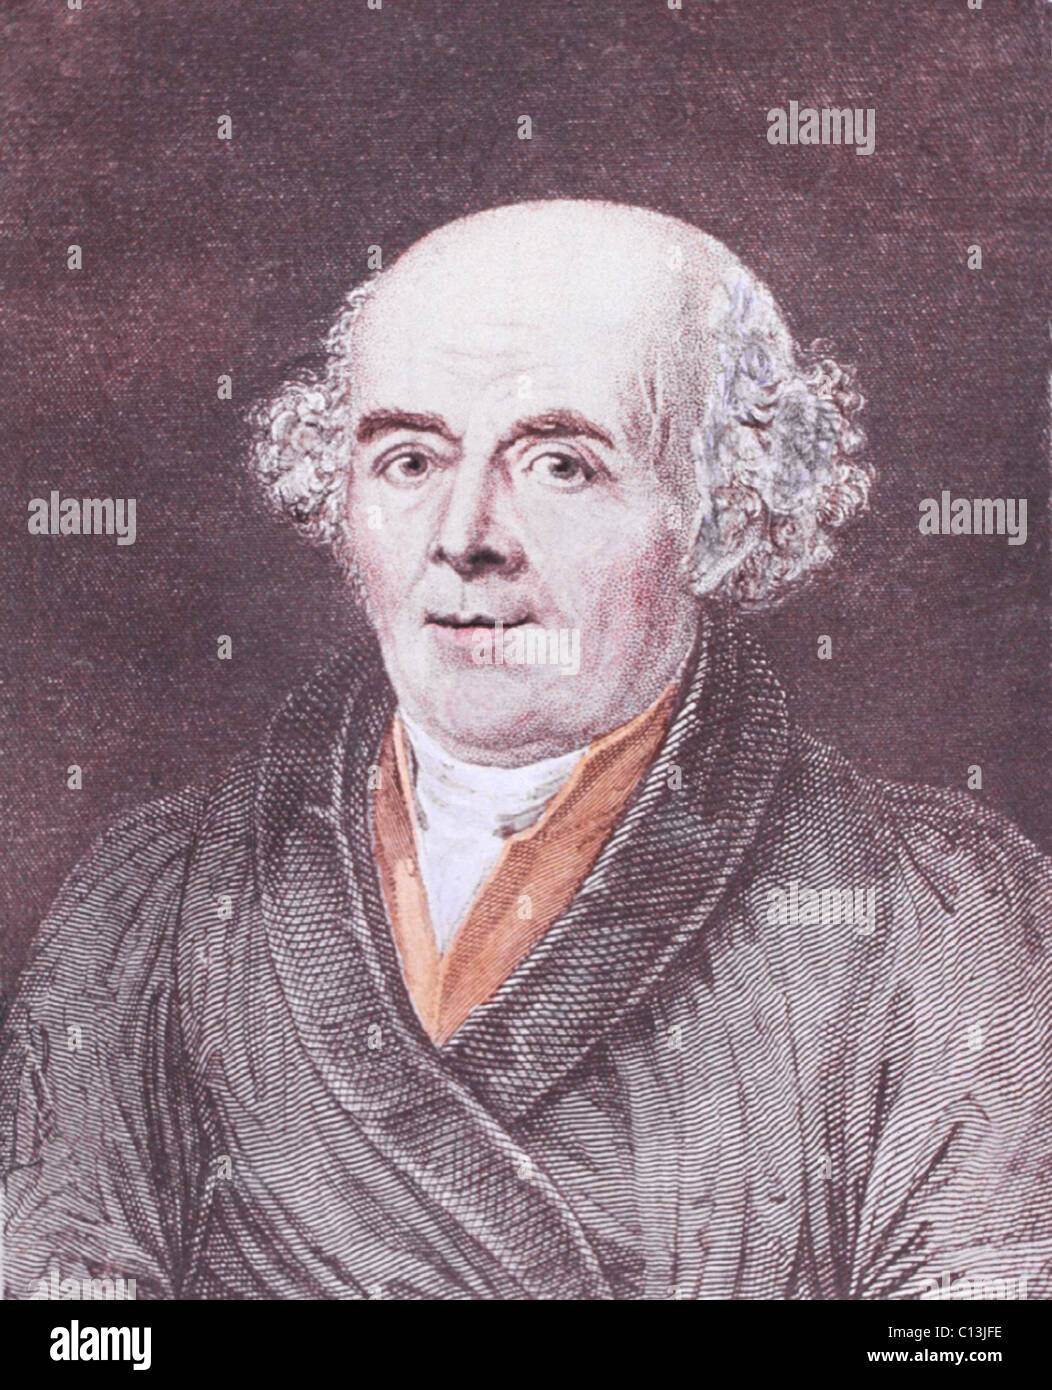 Samuel Hahnemann (1755-1843), the German founder of homeopathy, theorized that diseases are should be treated by - Stock Image